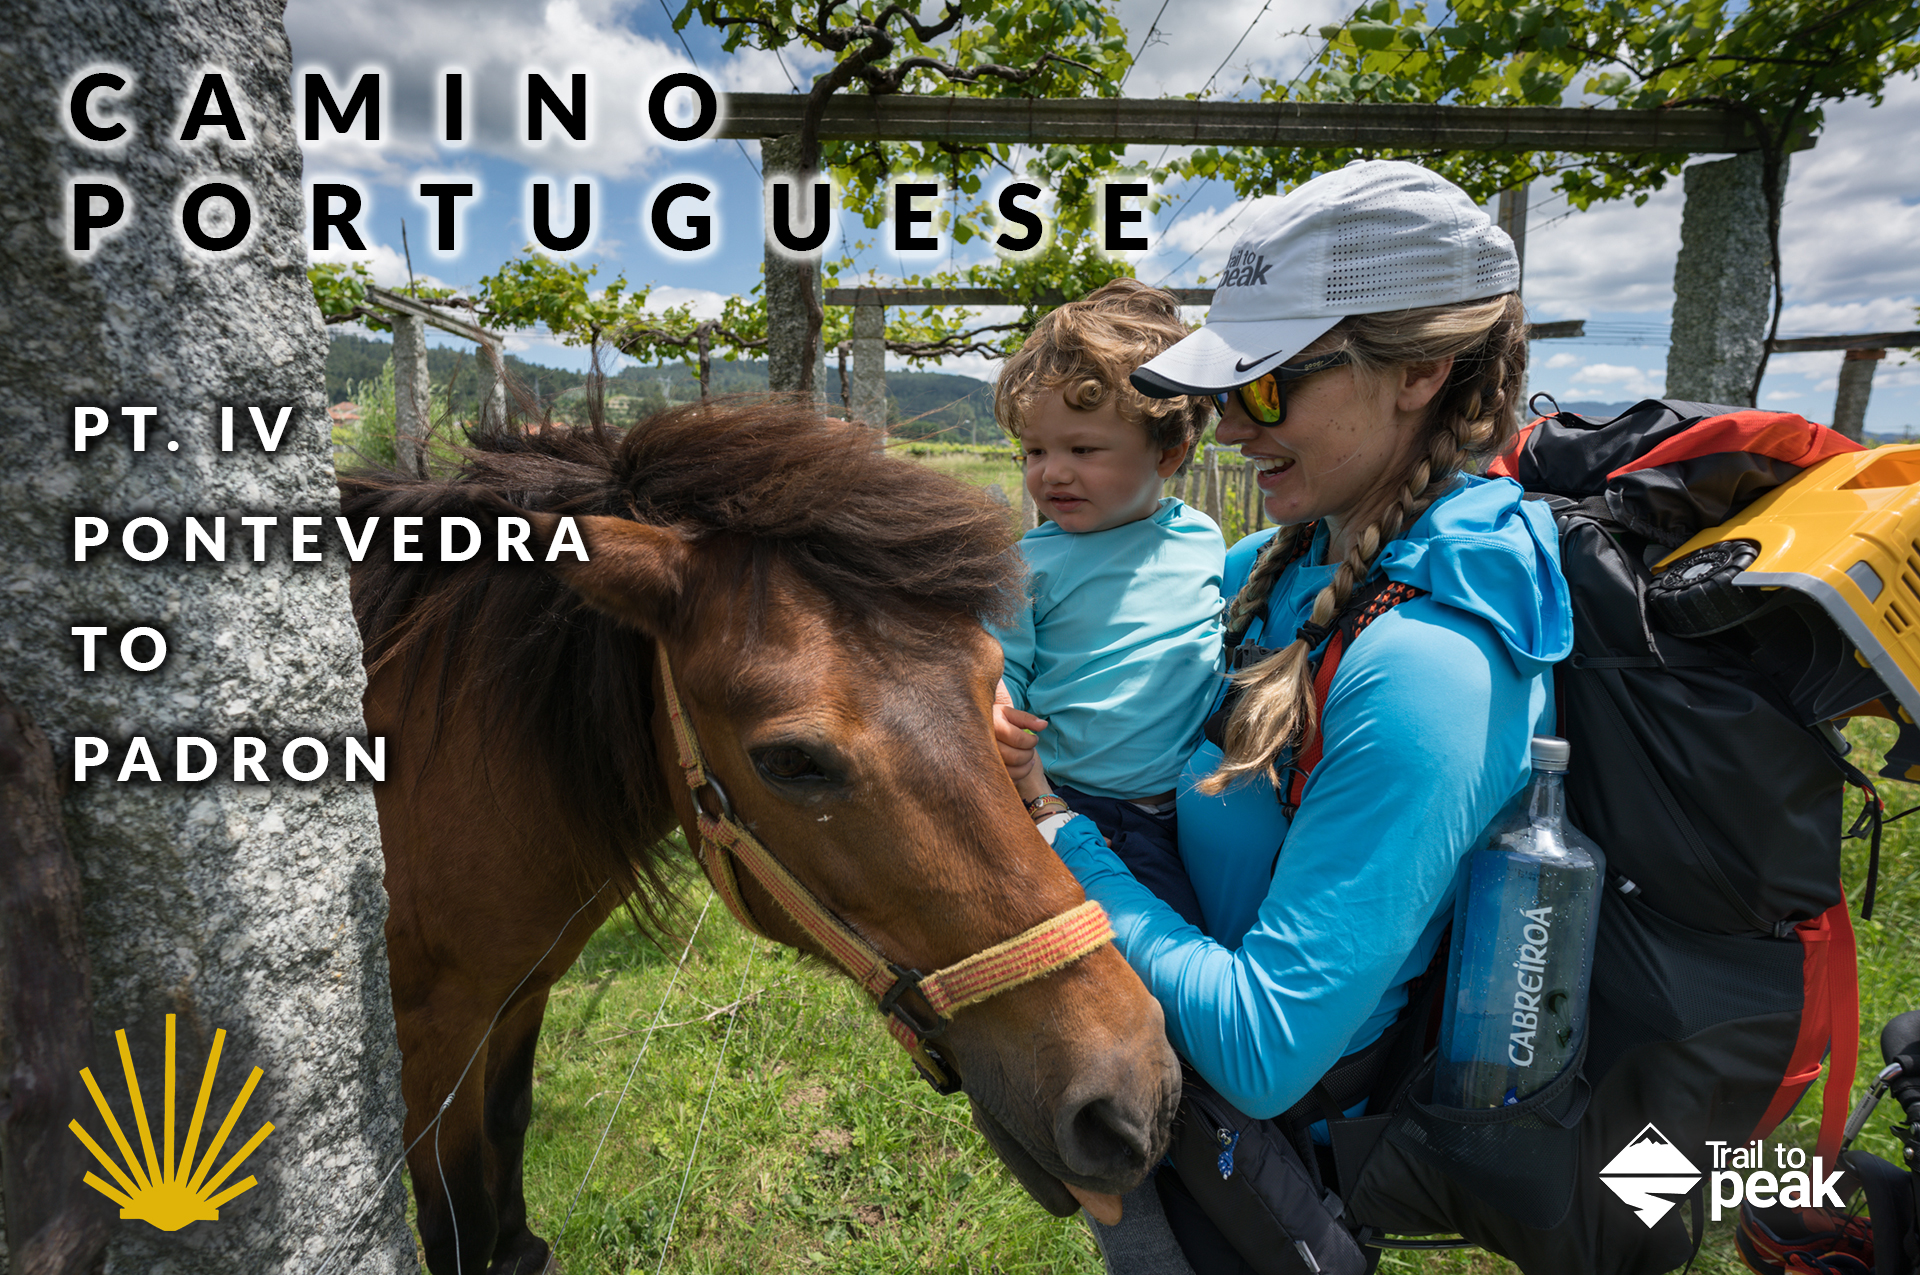 Video Post: The Camino Portuguese from Pontevedra to Padron (Pt. 4)